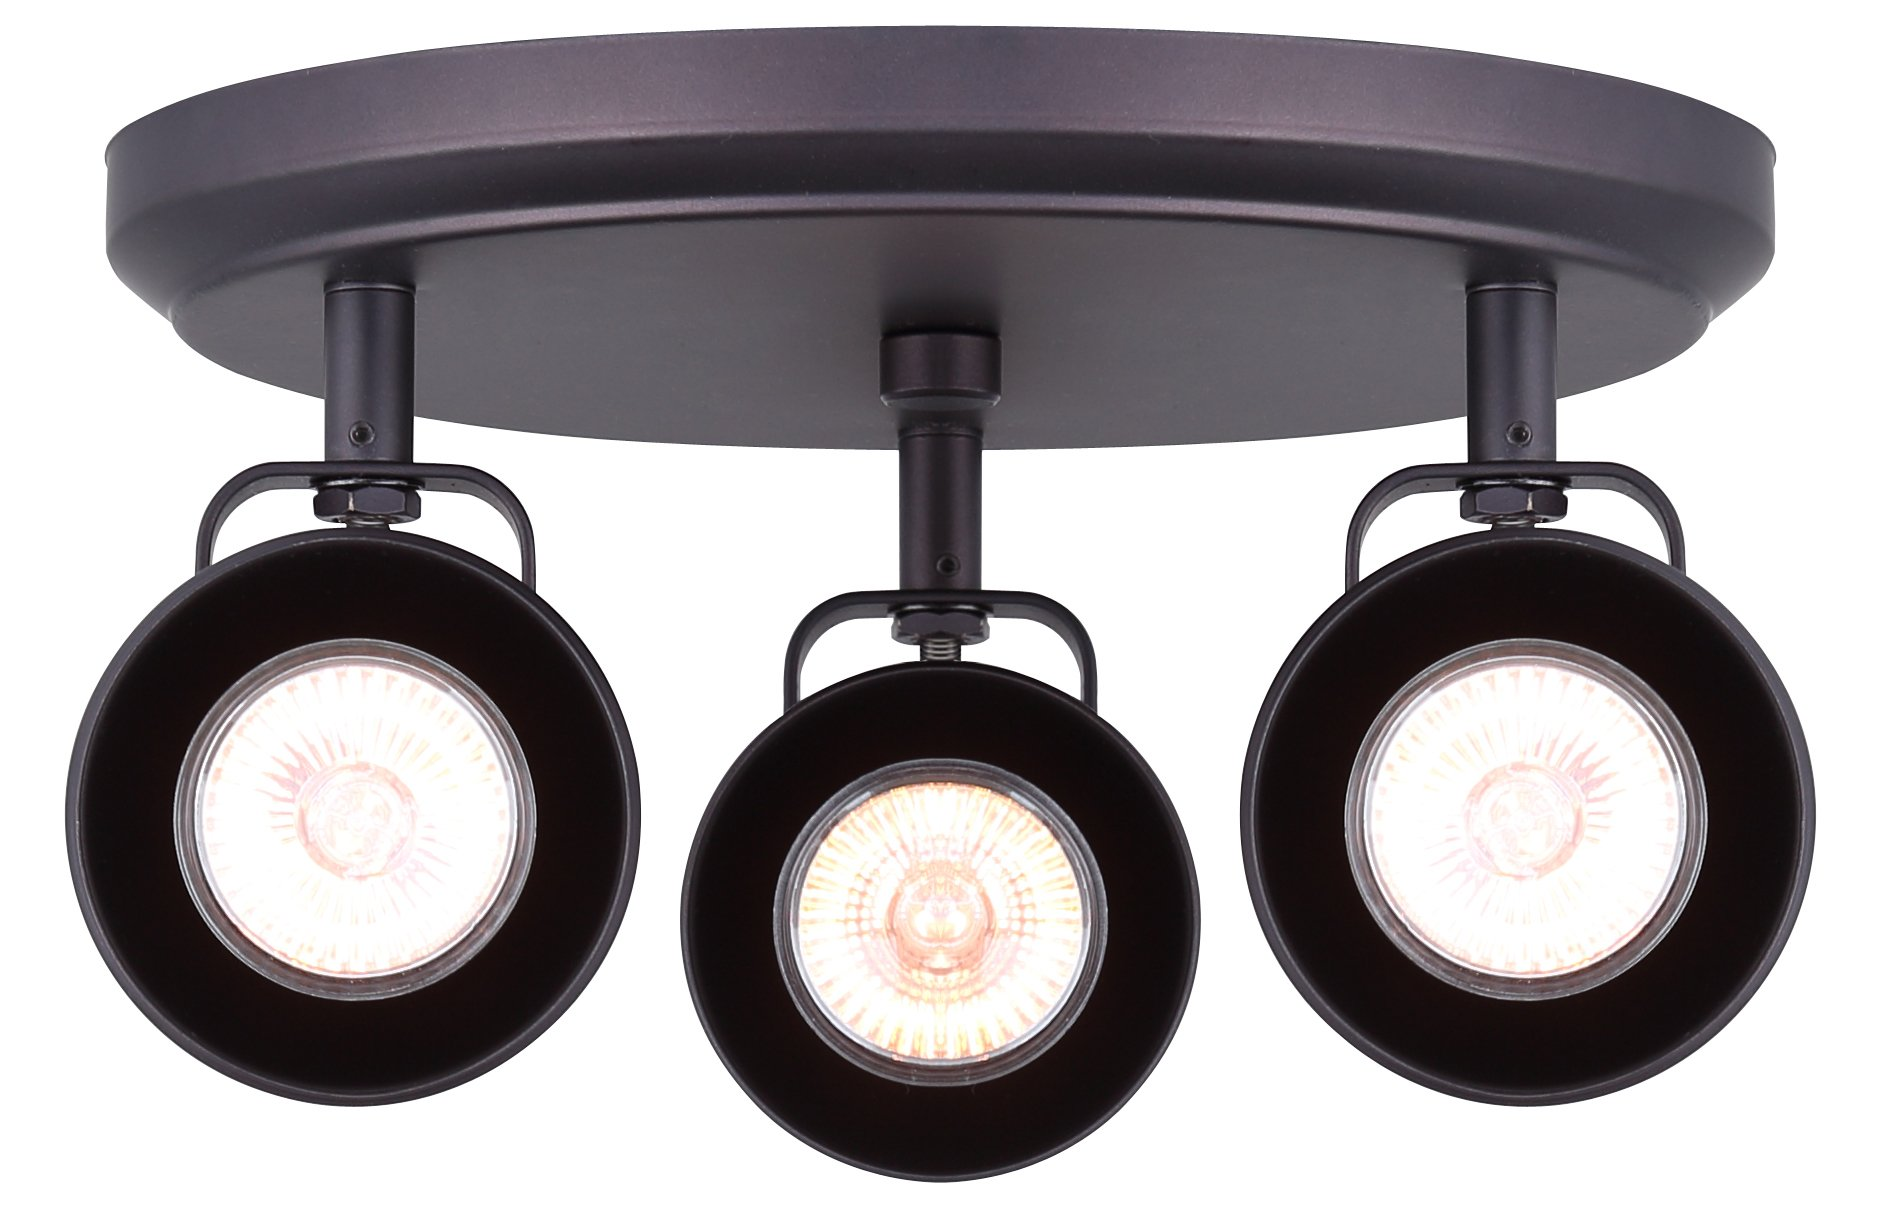 CANARM ICW622A03ORB10 Ltd Polo 3 Light Ceiling/Wall Adjustable Heads, Oil Rubbed Bronze